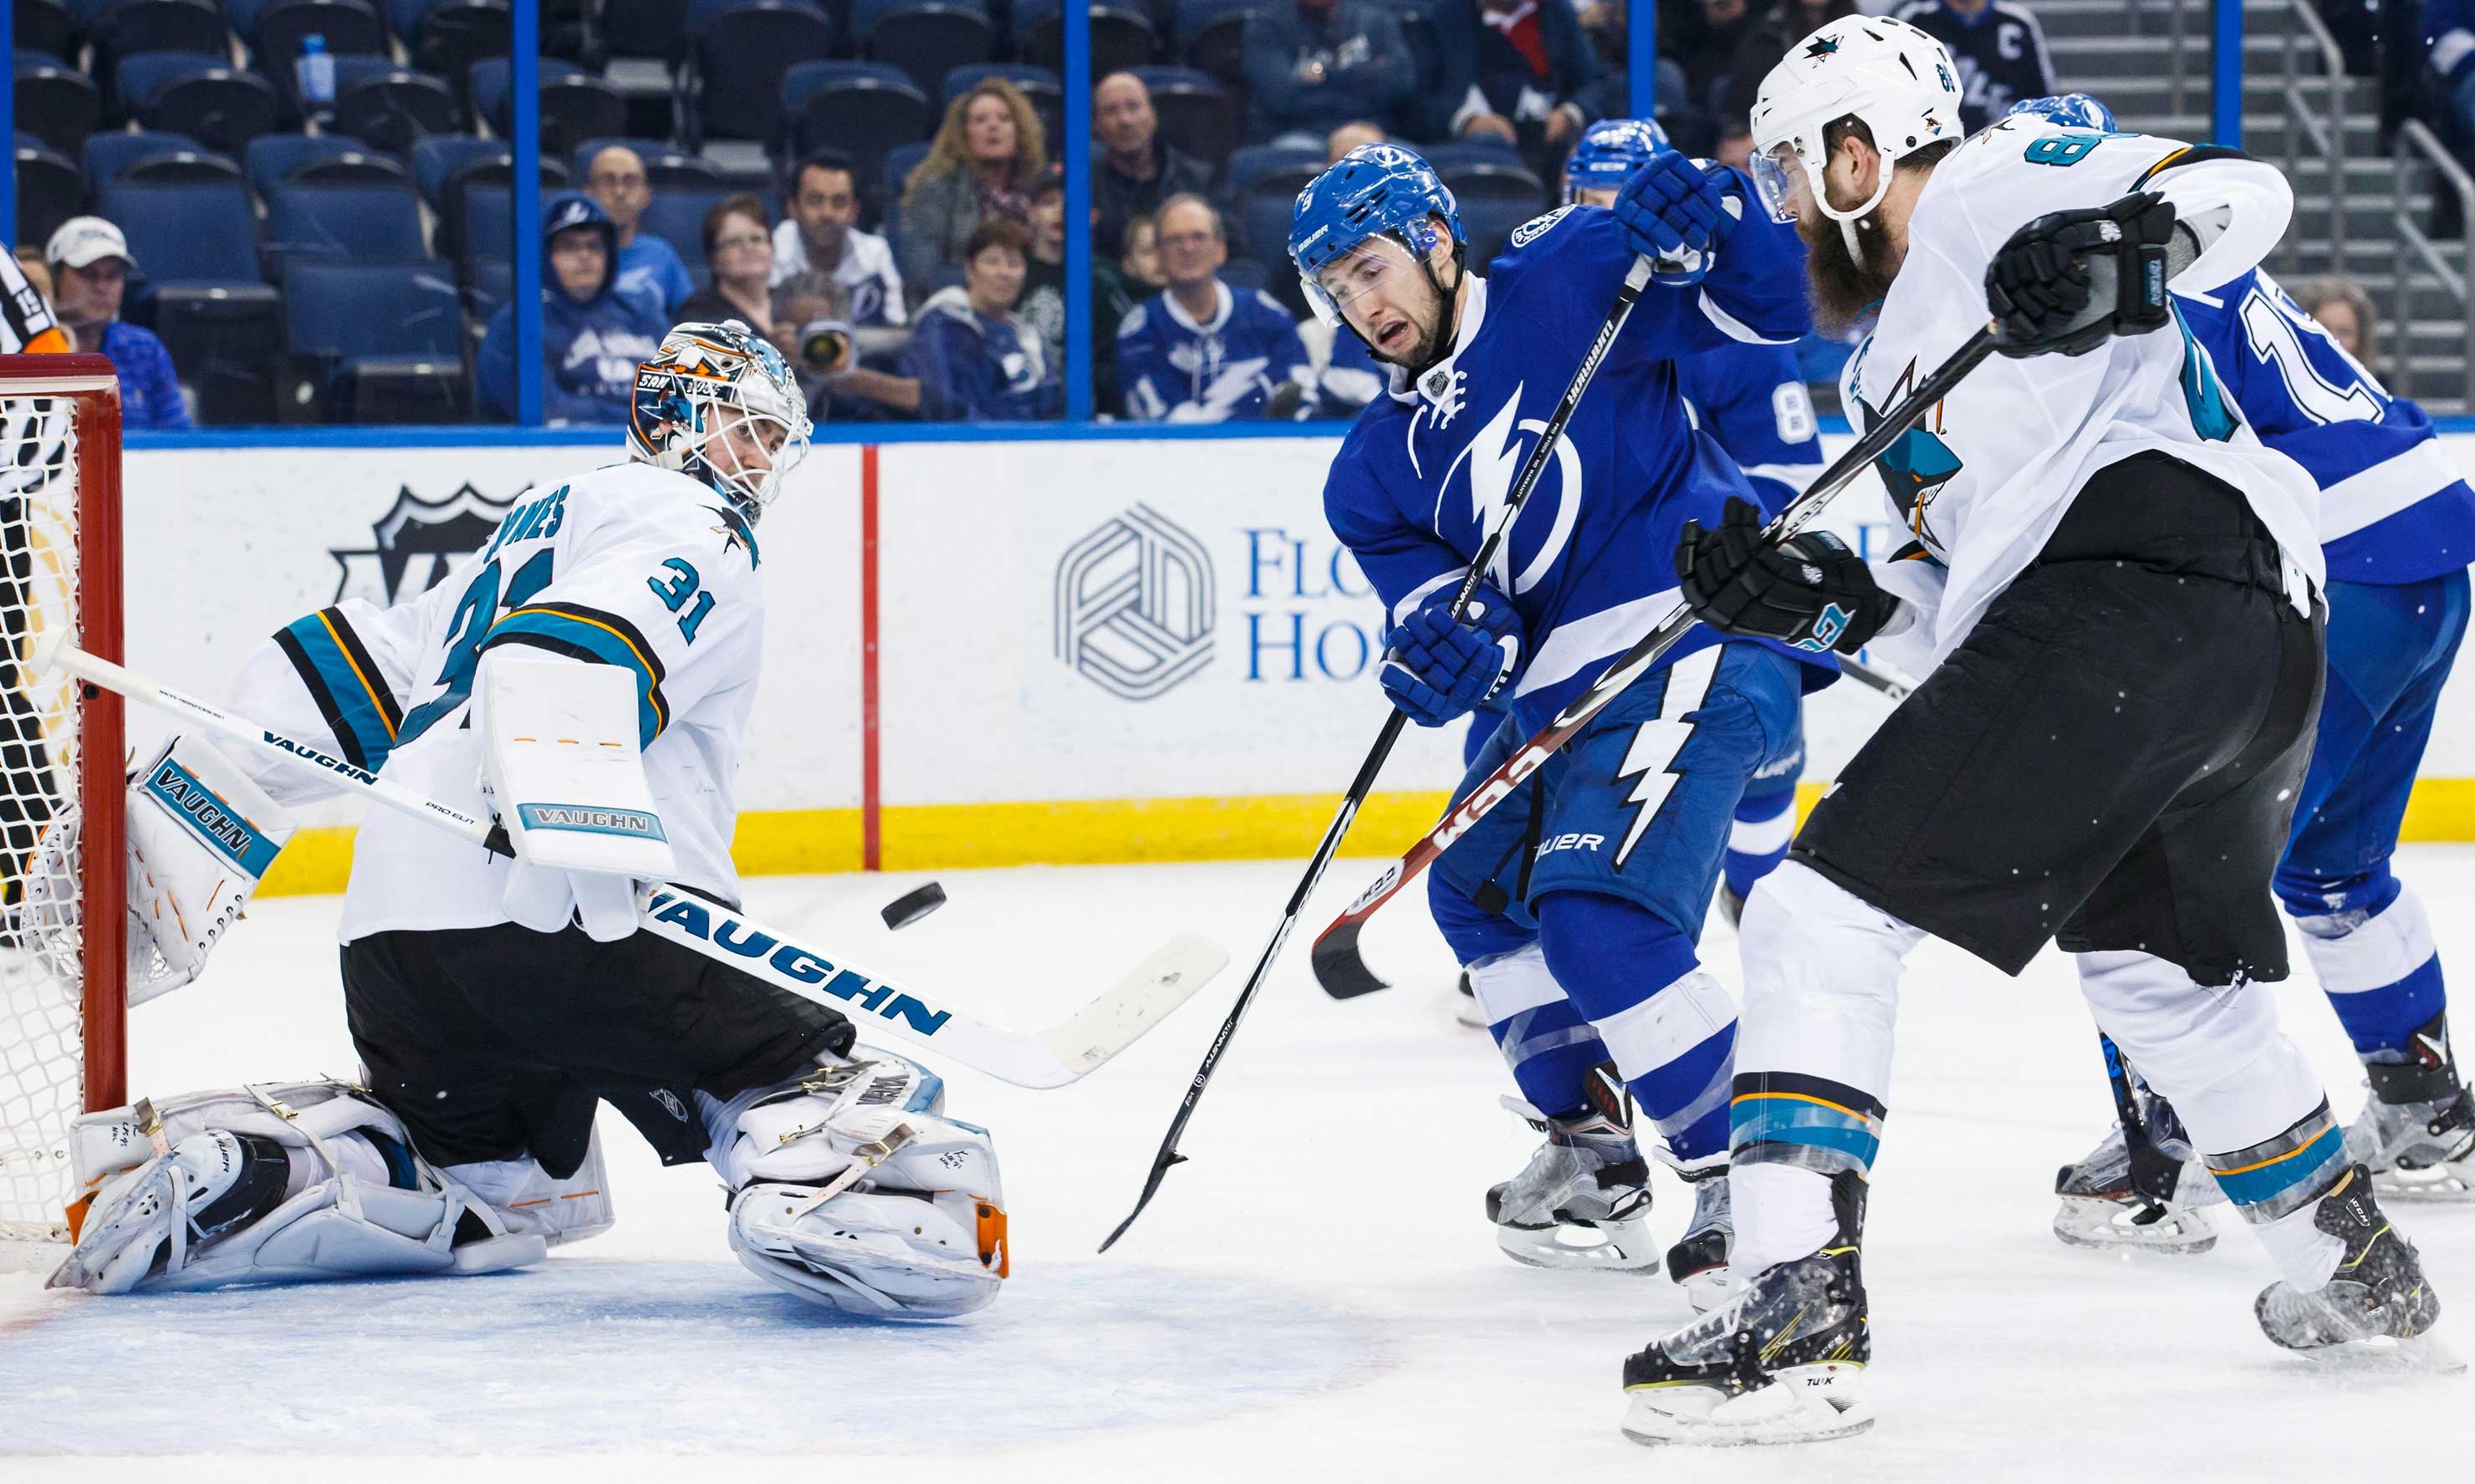 Tyler Johnson (No. 9) of Tampa Bay battles for the puck with Brent Burns next to San Jose goalie Martin Jones.